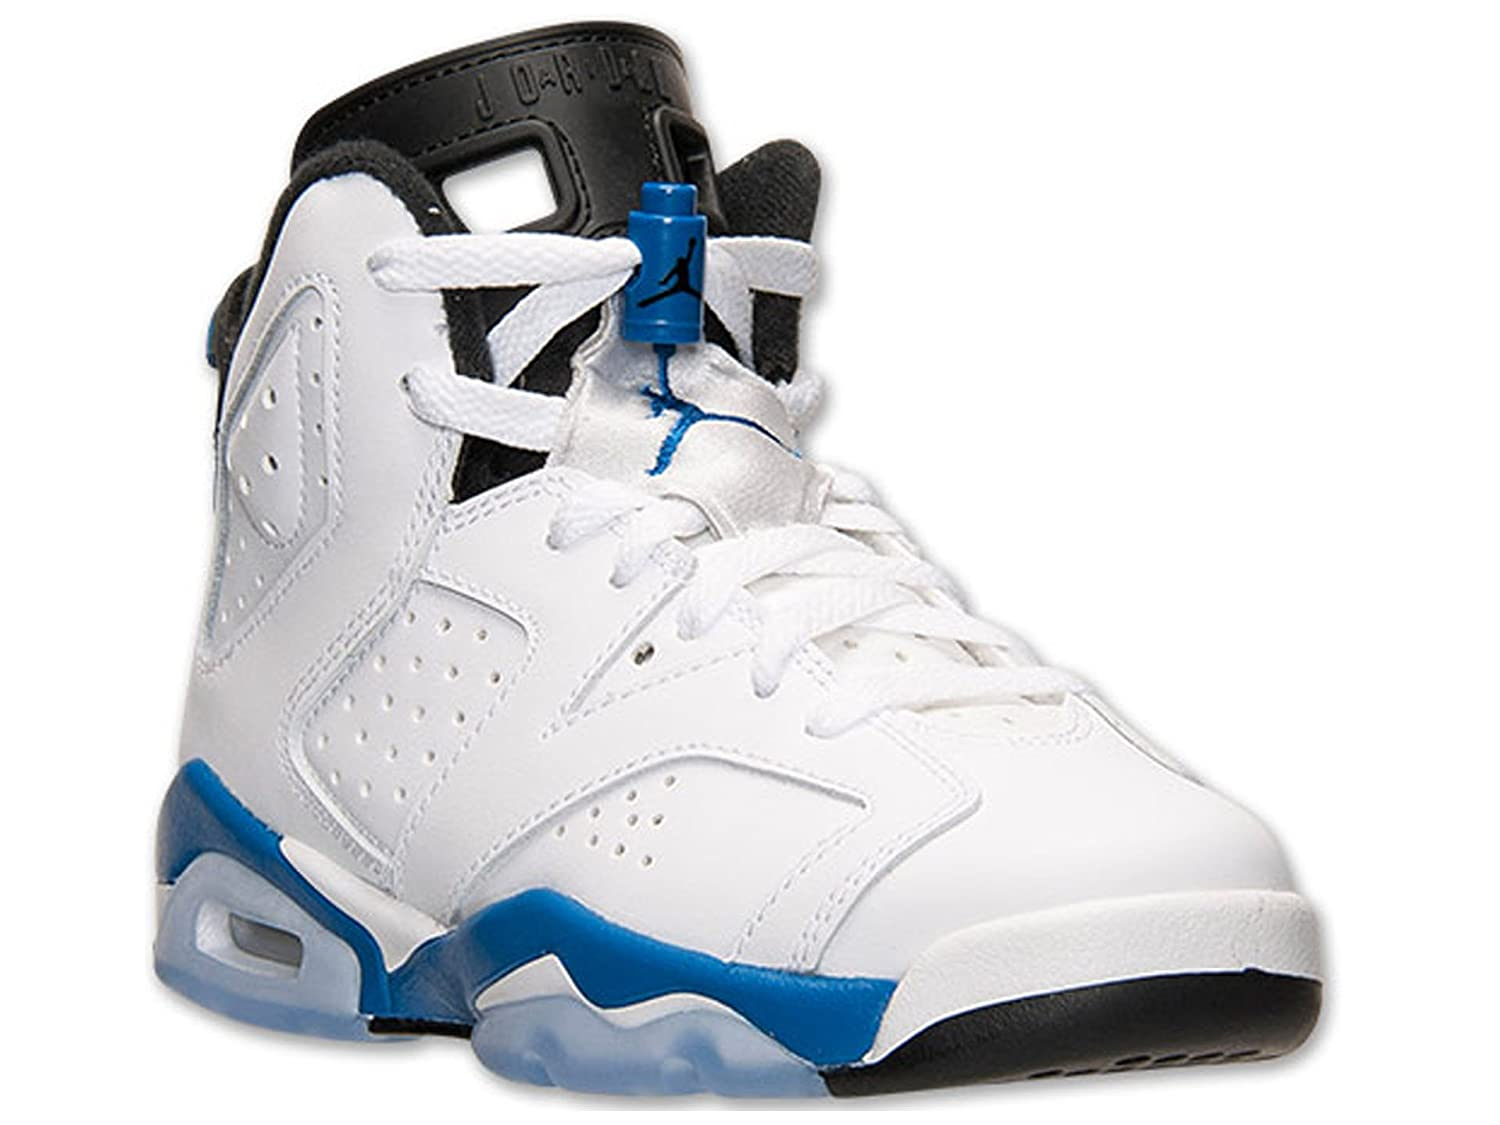 buy popular a4a4c 0b7b1 Amazon.com  Air Jordan 6 Vi Retro Grade School Boy Basketball Sneakers White  Black Sport Blue 384665-107 (Size  5Y)  Sports   Outdoors